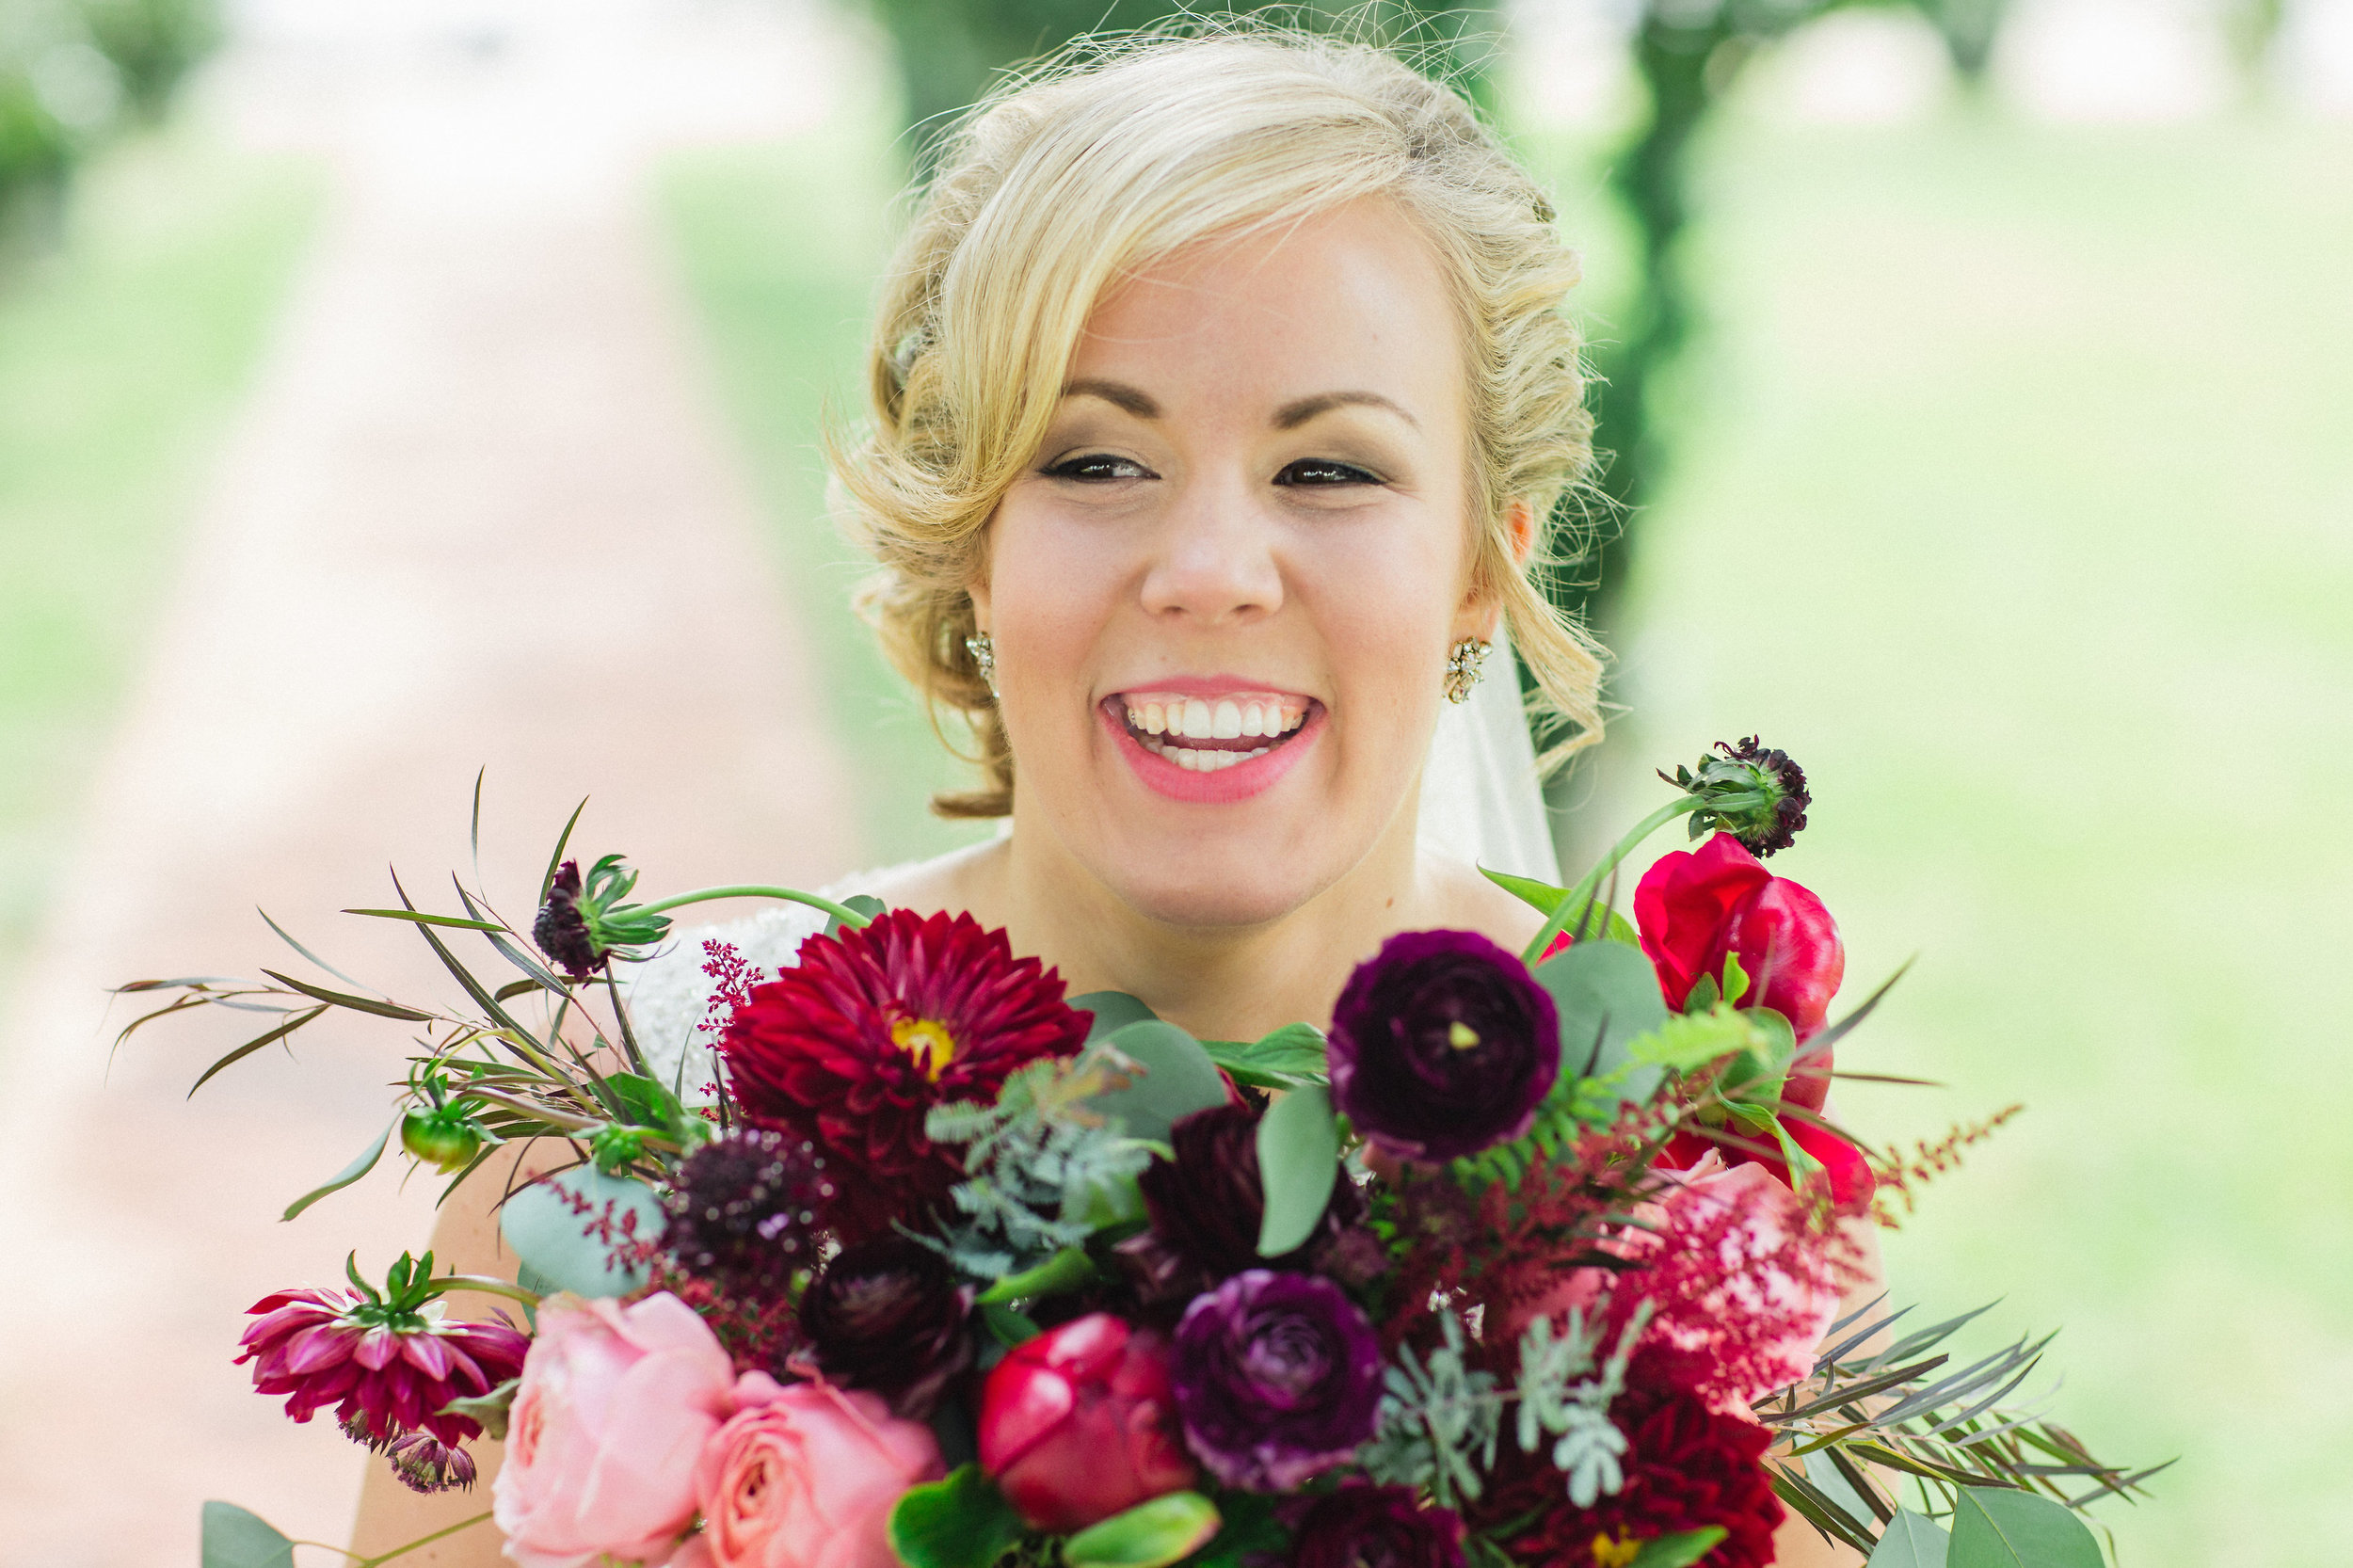 Hannah's bouquet was filled with dahlias, garden roses, ranunculus, peonies, scabiosa, acacia foliage, feather eucalyptus, silver dollar eucalyptus,  astilbe, and fern.